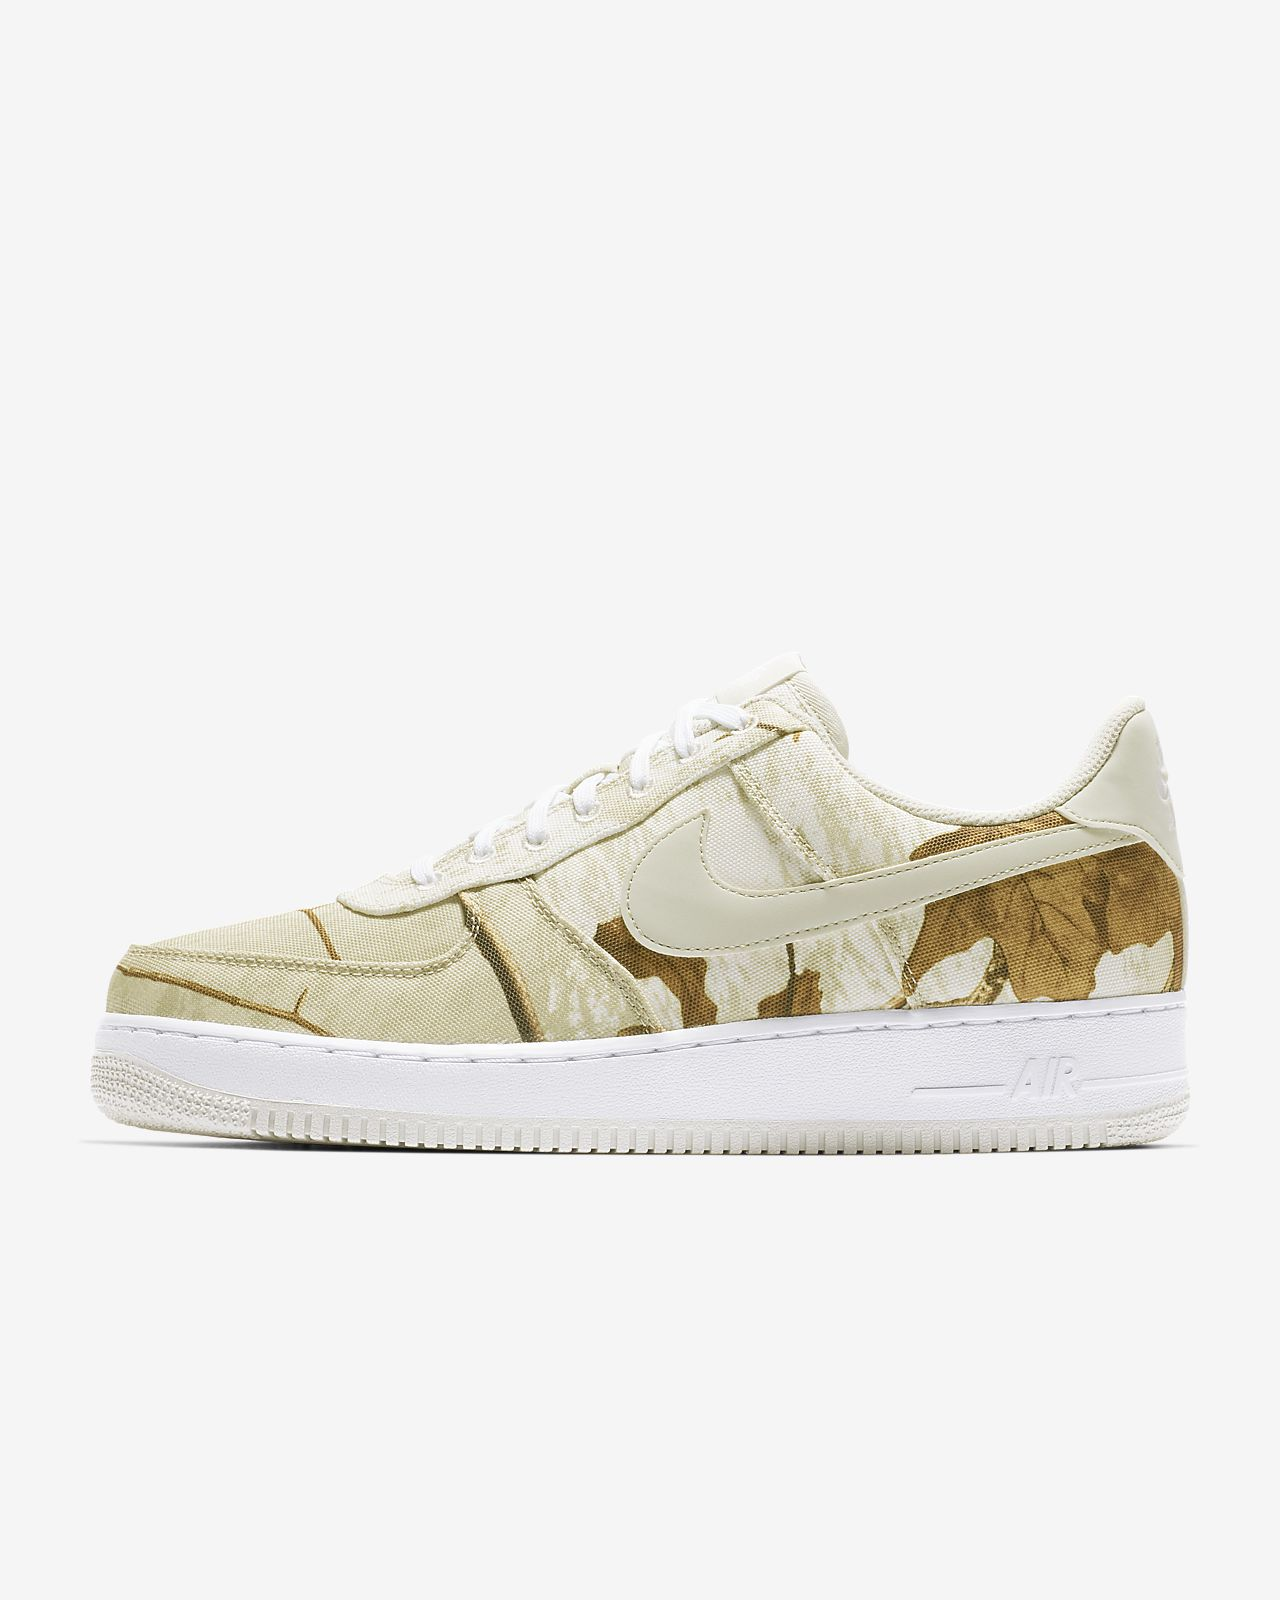 timeless design 5ef55 e8b7e ... Nike Air Force 1 07 LV8 3 Realtree®-sko til mænd